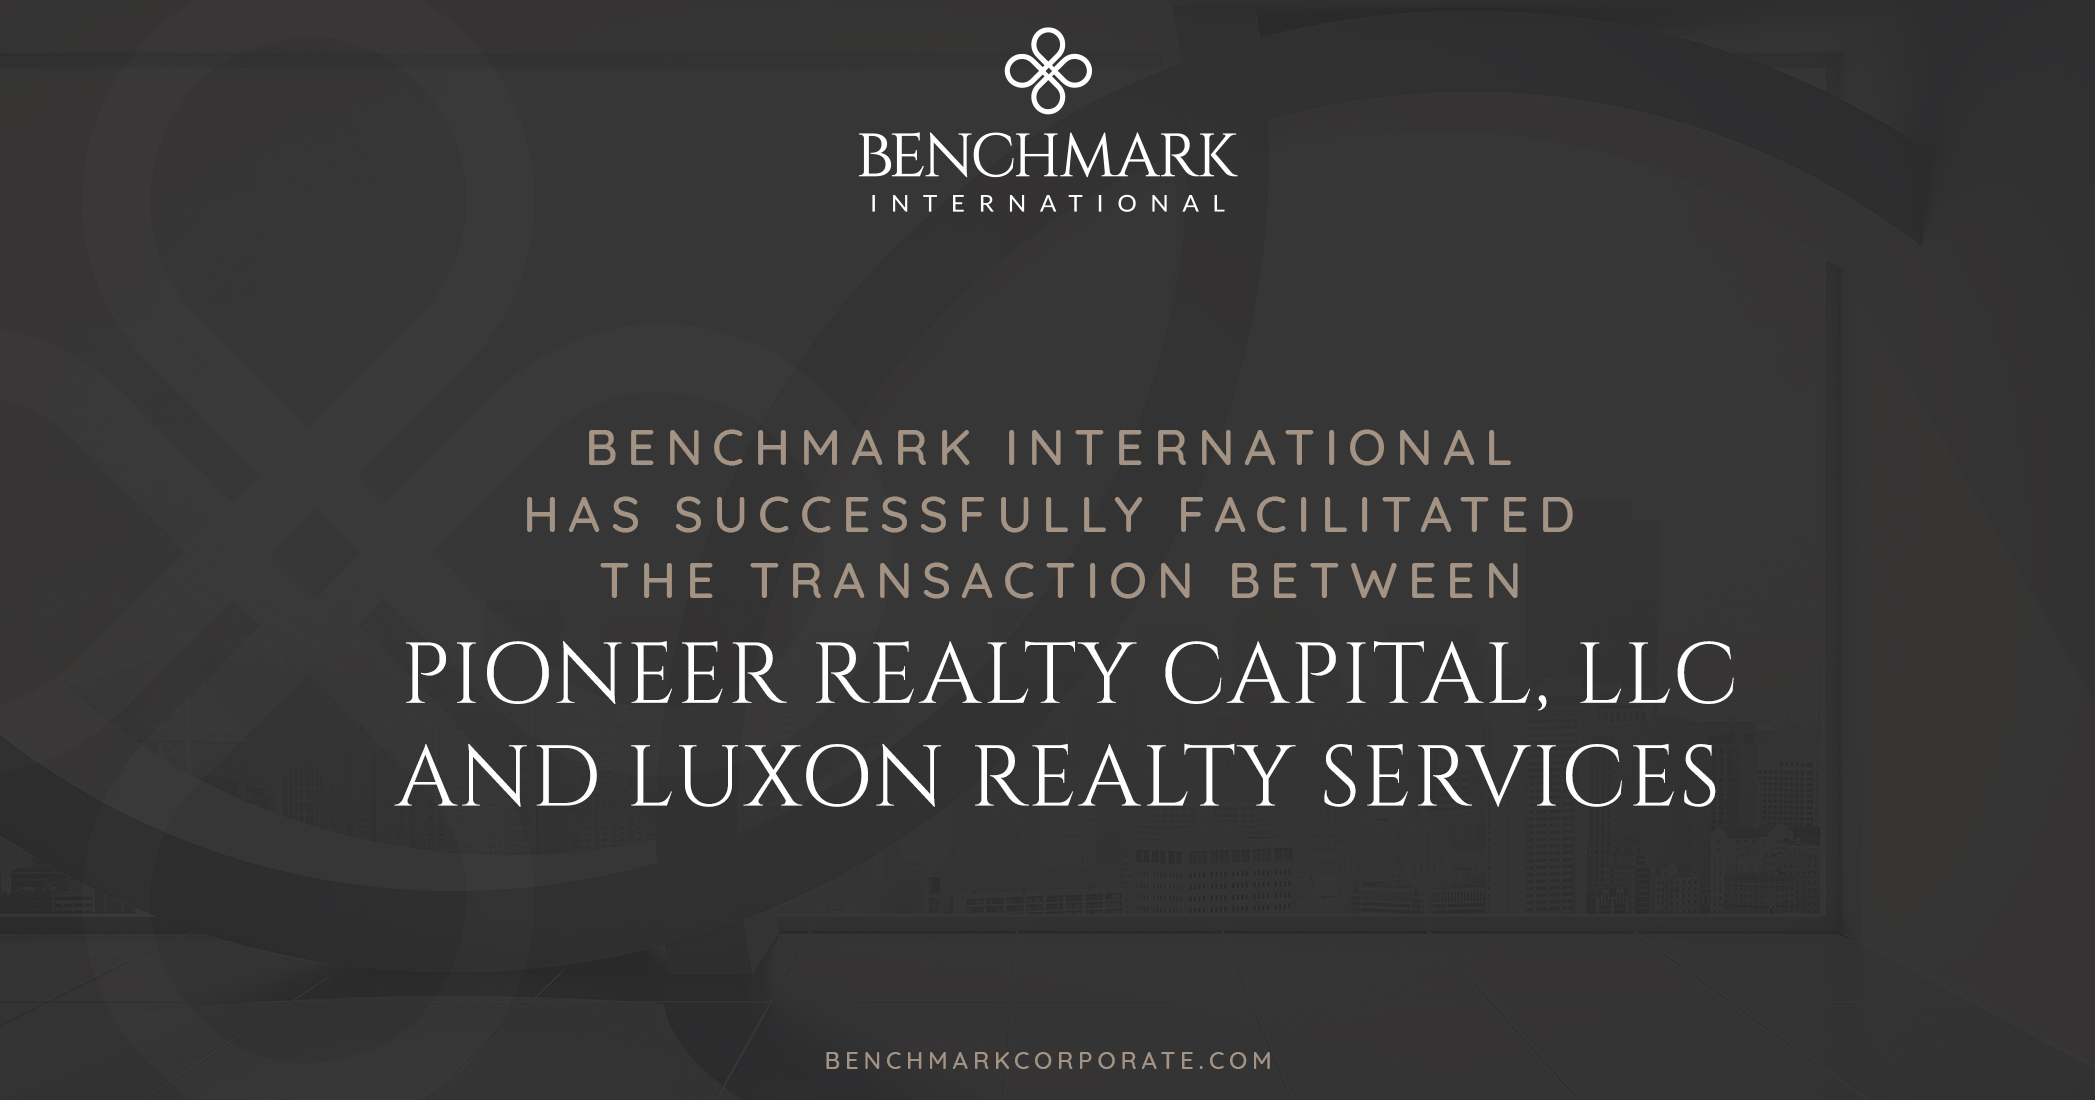 Benchmark International Successfully Facilitated a Transaction Between Pioneer Realty Capital, LLC and Luxon Realty Services